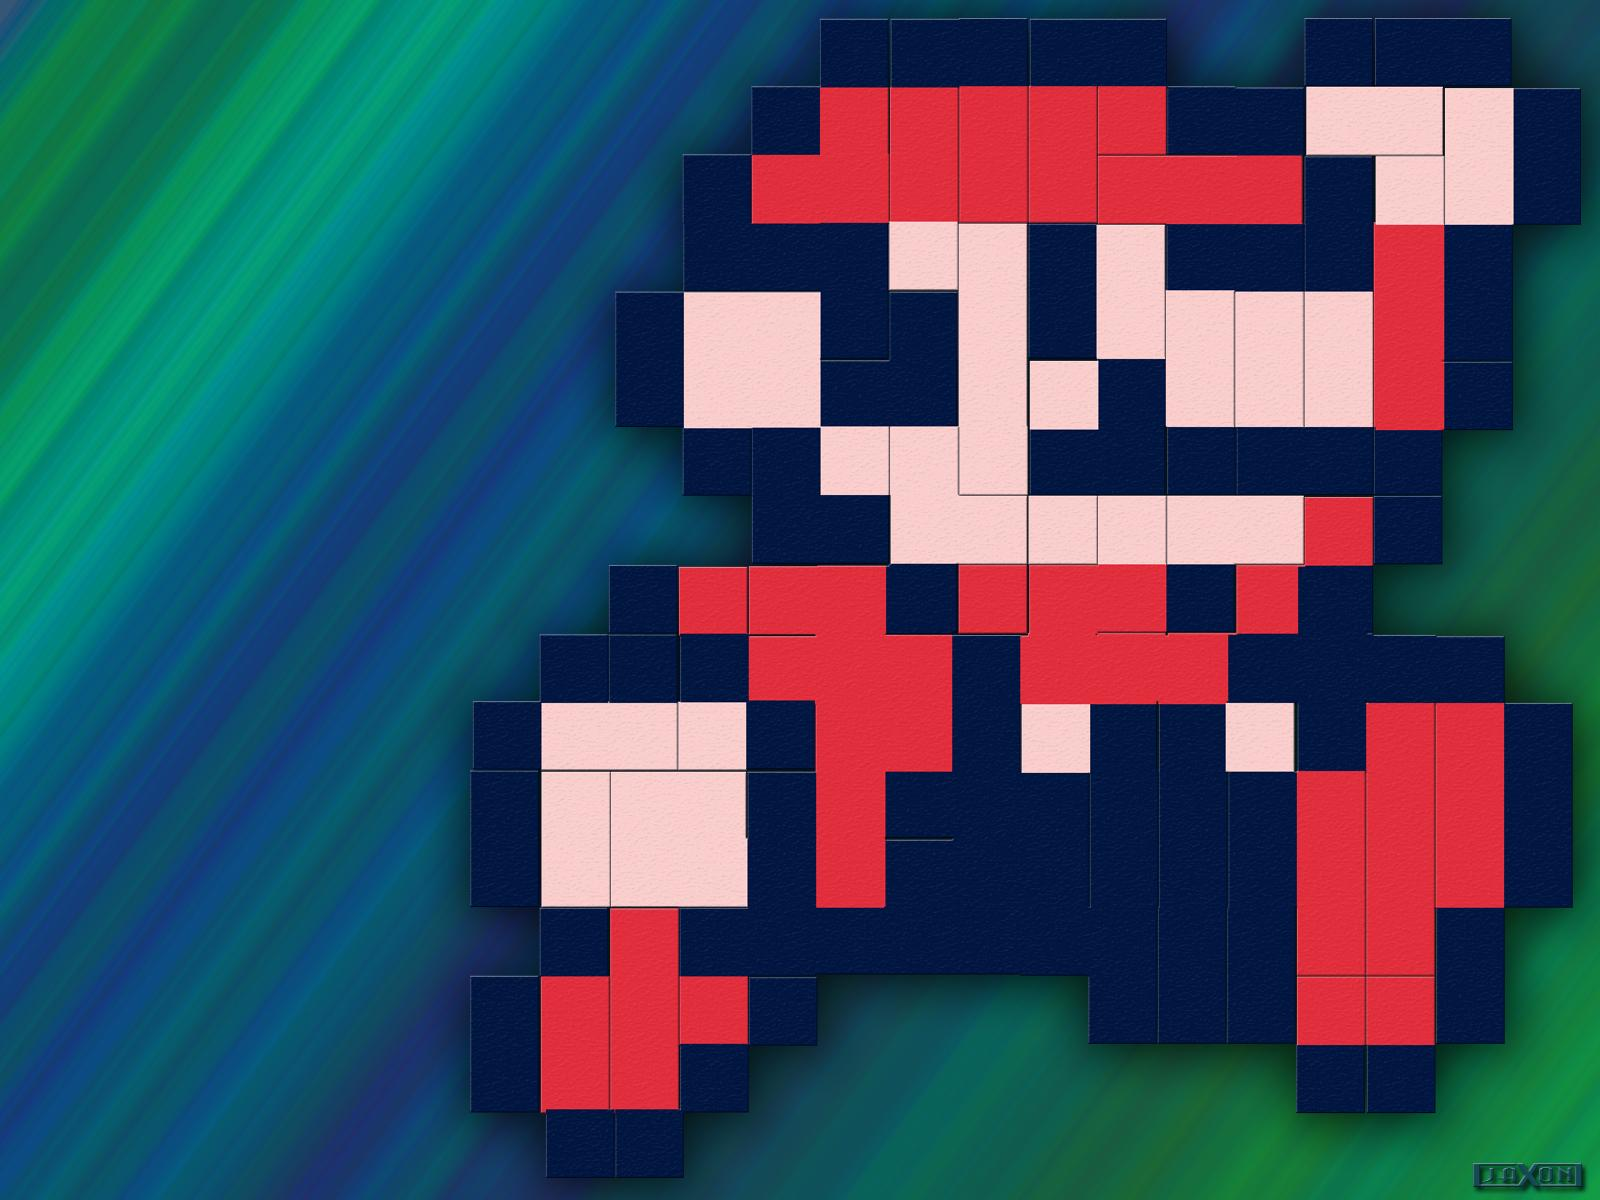 DeviantArt: More Like 8 Bit Mario Wallpaper by JayJaxon